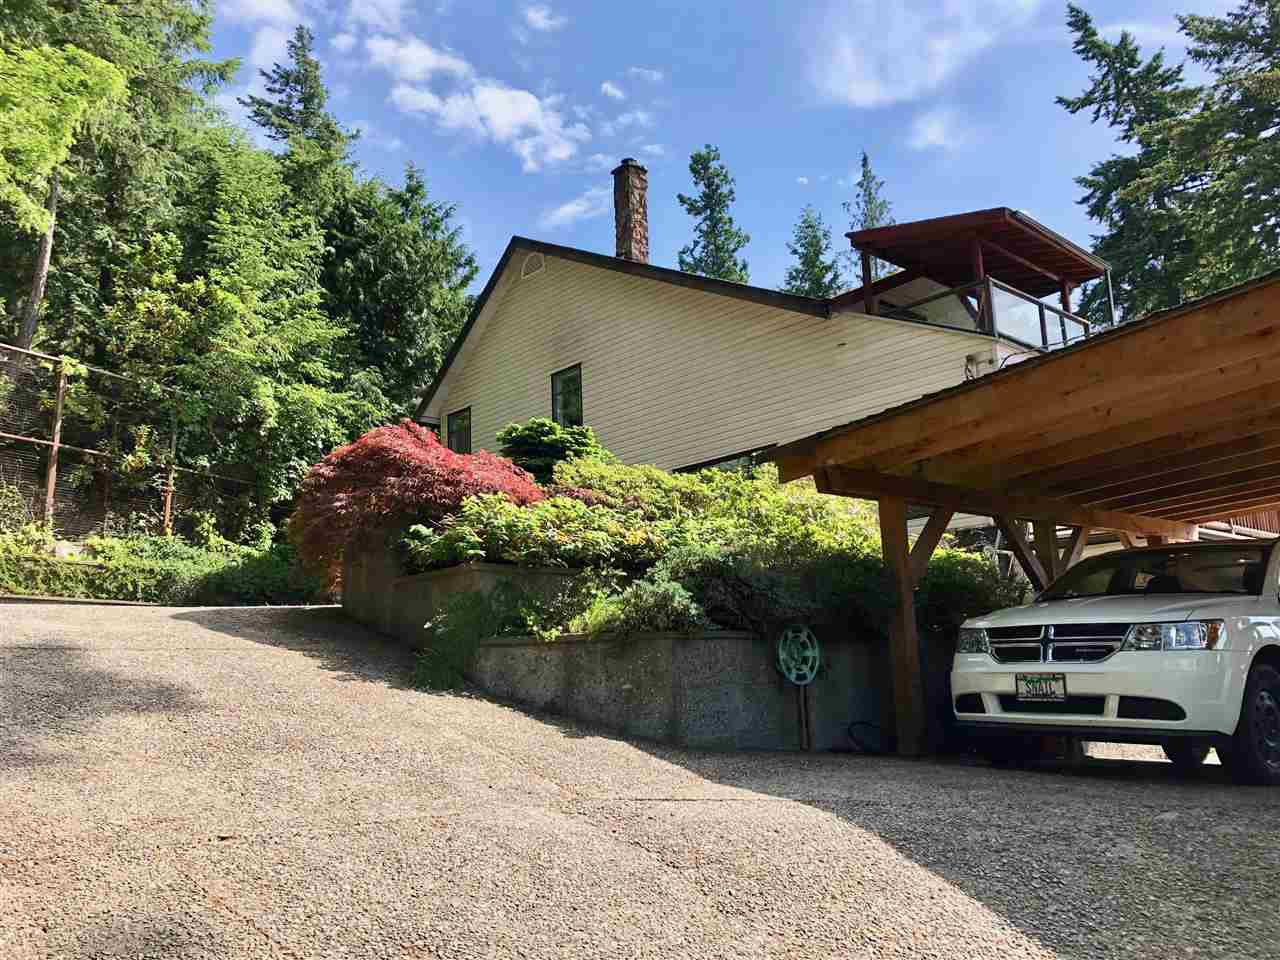 Photo 20: Photos: 4743 HOTEL LAKE Road in Garden Bay: Pender Harbour Egmont House for sale (Sunshine Coast)  : MLS®# R2424554